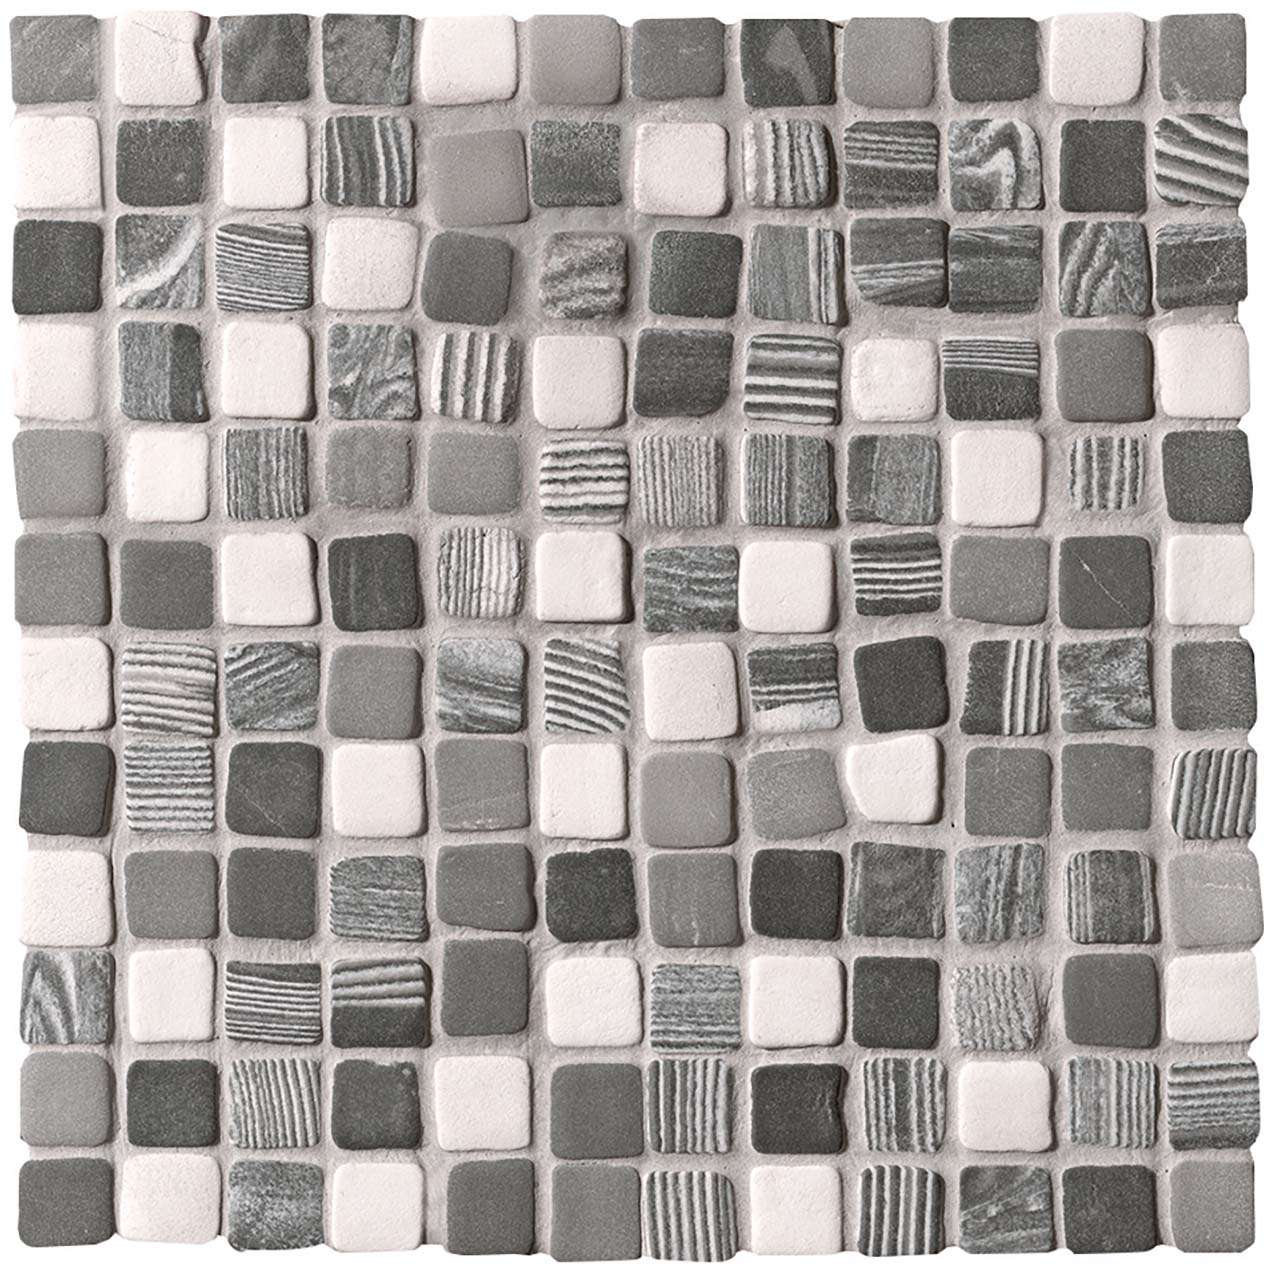 Fap Nord Optical Solid Color Mosaico Matt 30x30